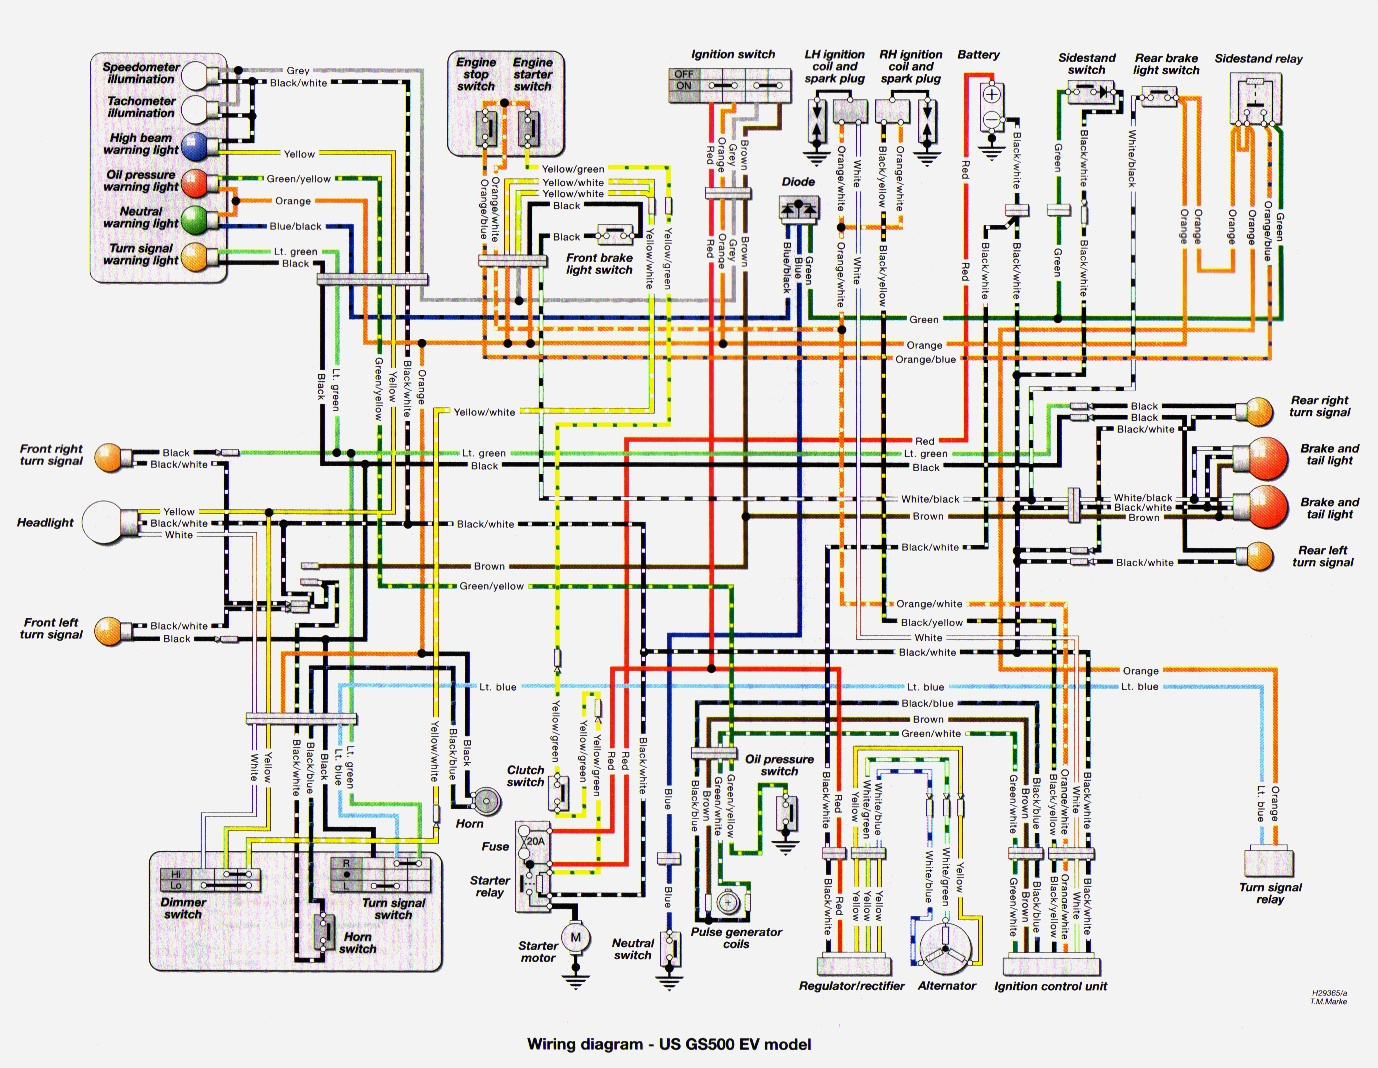 Haynes_WiringDiagram_US_97 97 ford expedition wiring schematic wiring diagram simonand international scout wiring diagram at edmiracle.co